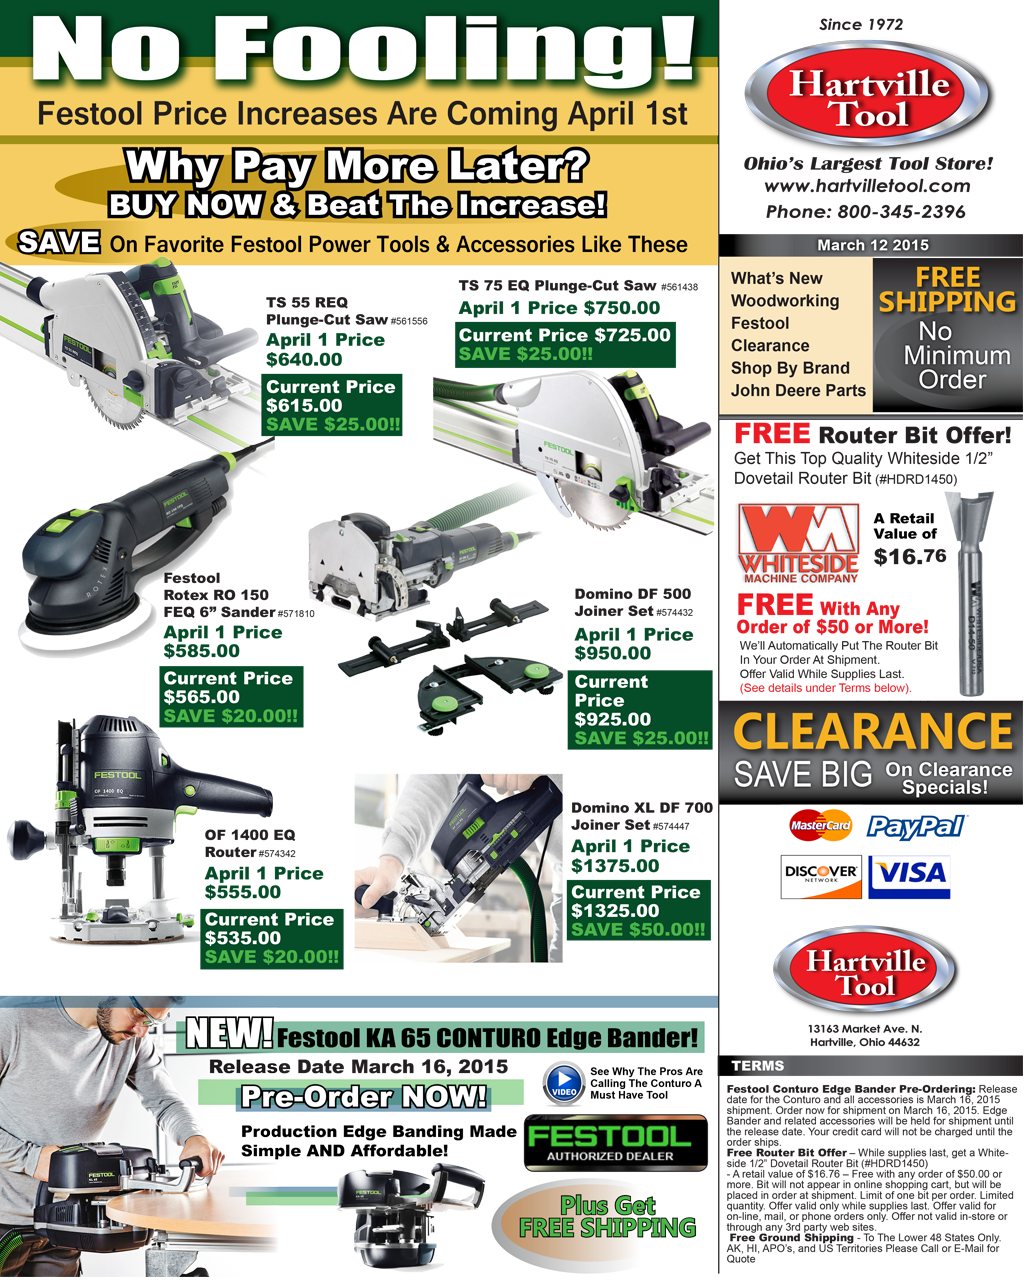 Hartville Tool Enews - March 12, 2015 E-News Specials